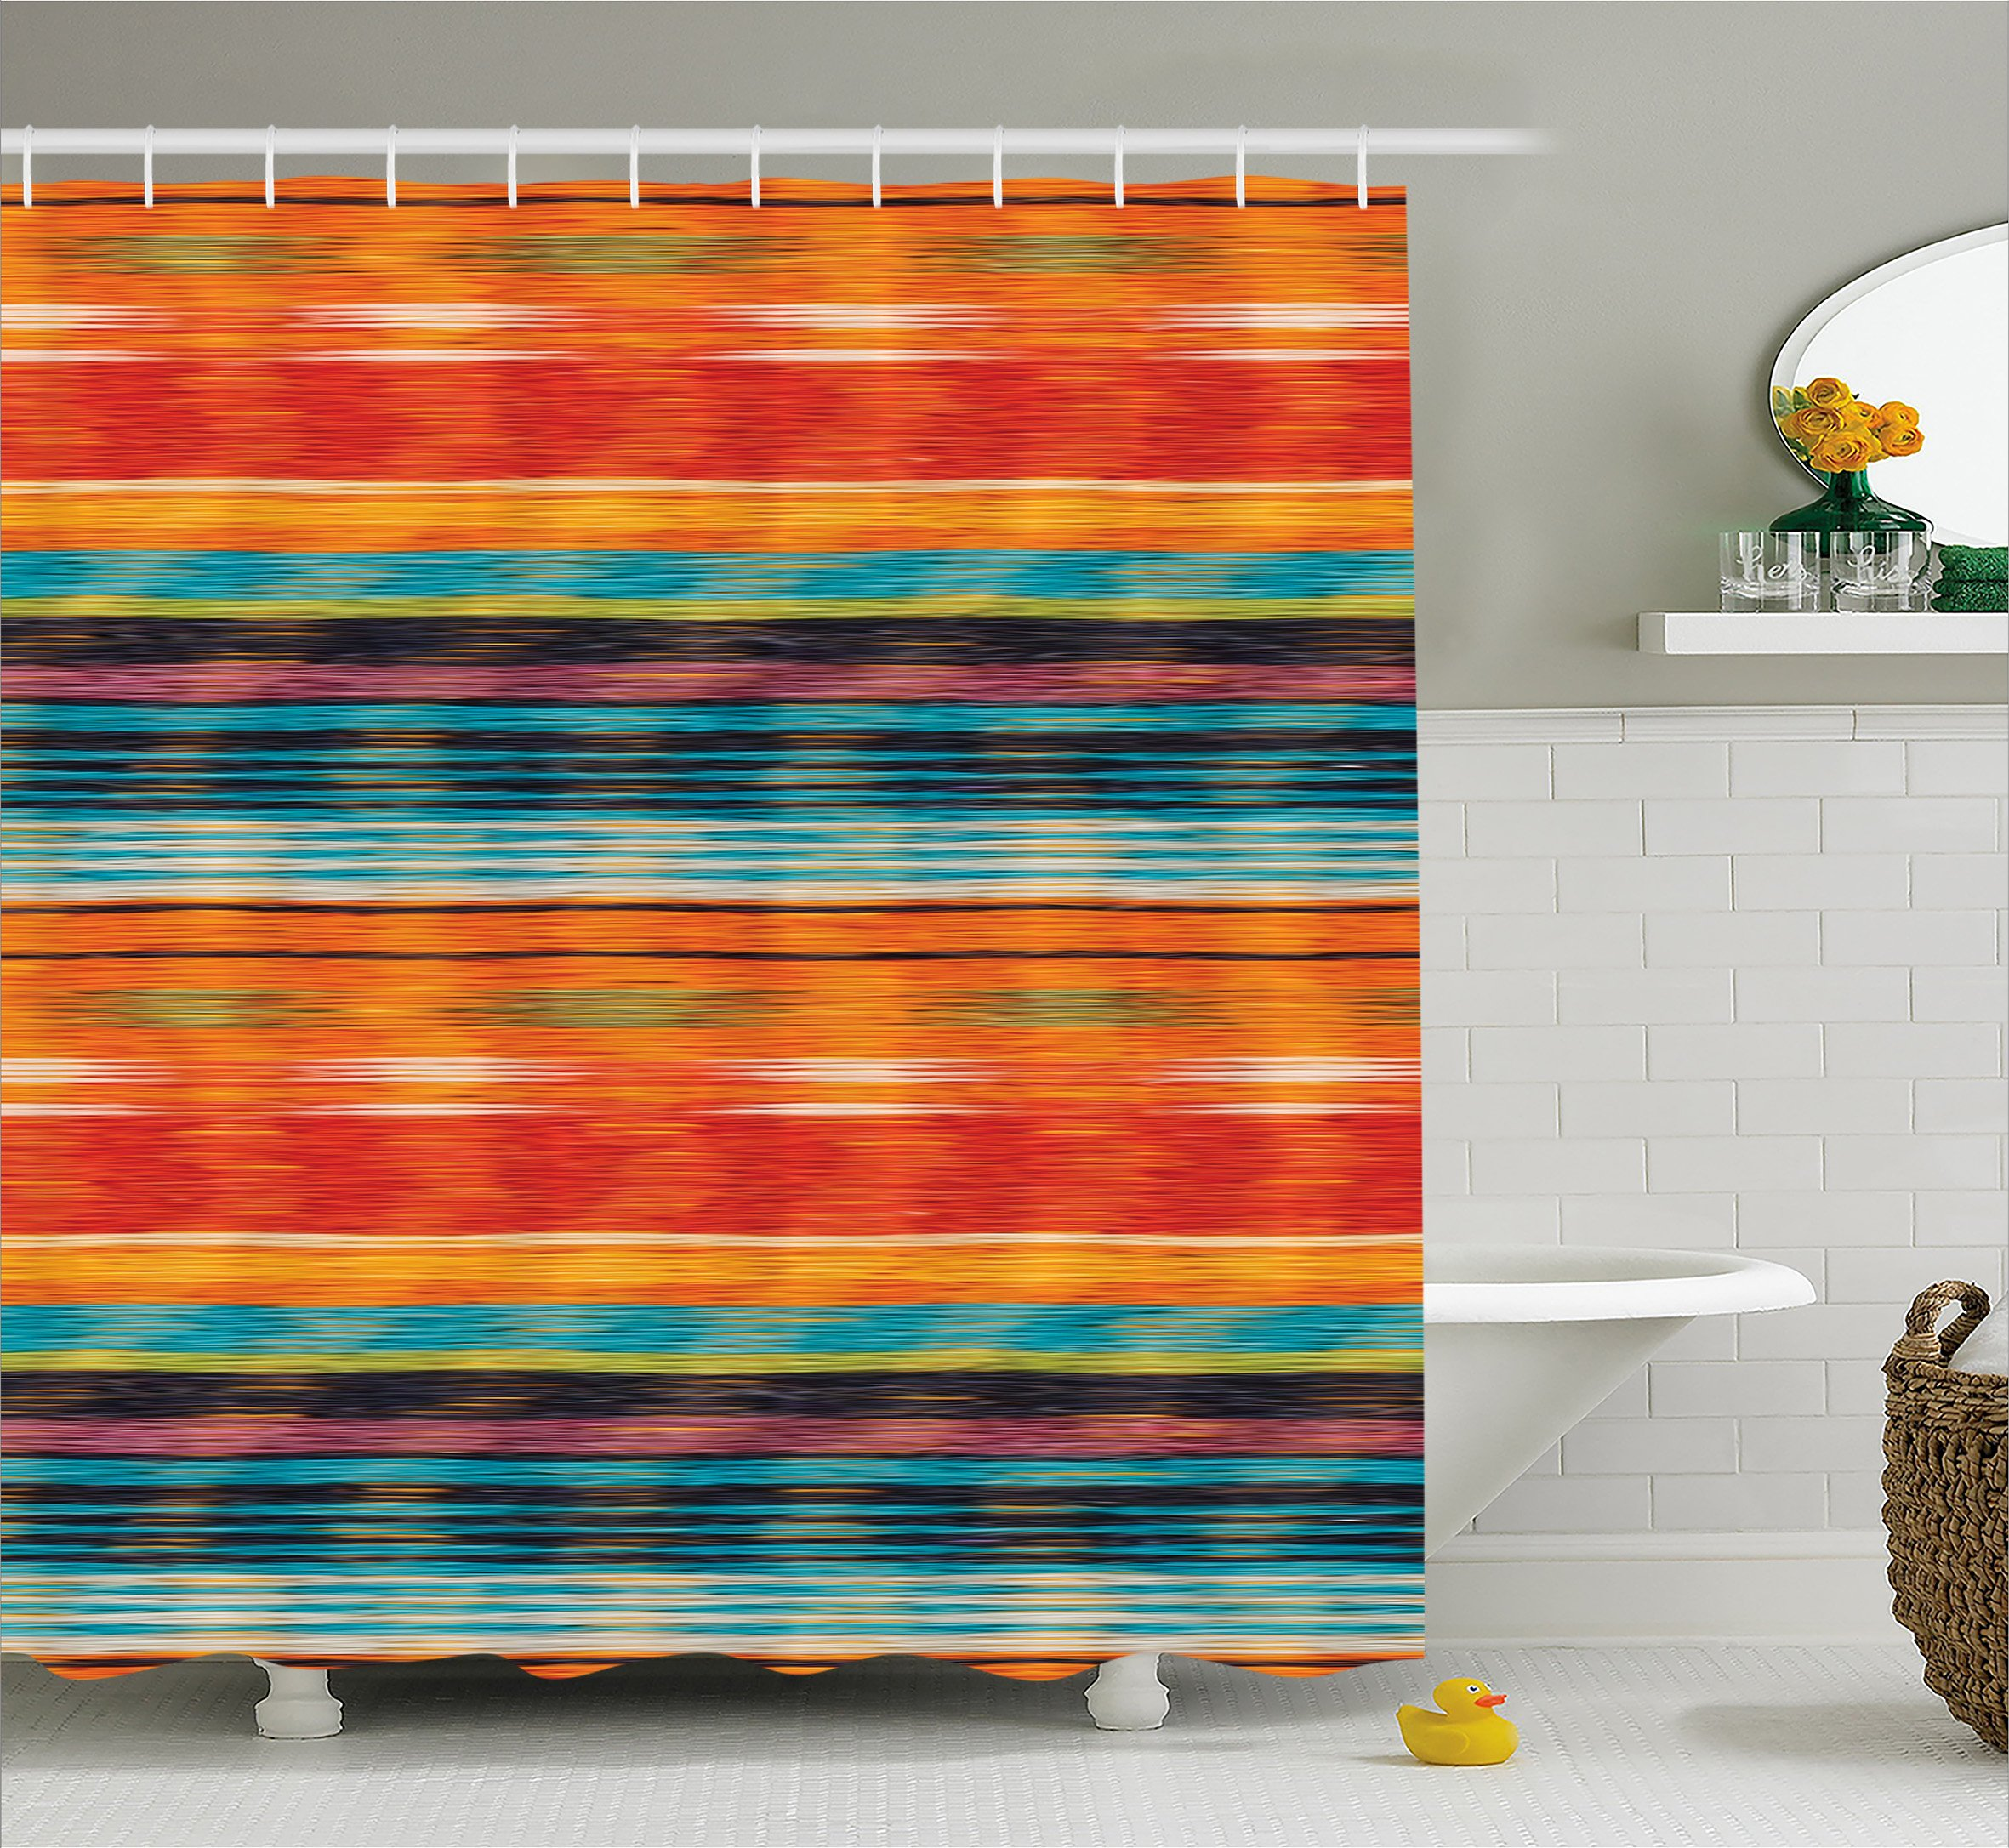 Ambesonne Mexican Decorations Shower Curtain by, Vibrant Vintage Aztec Motif with Gradient Blurred Lines Ecuador Crafts Image, Fabric Bathroom Decor Set with Hooks, 75 Inches Long, Multi